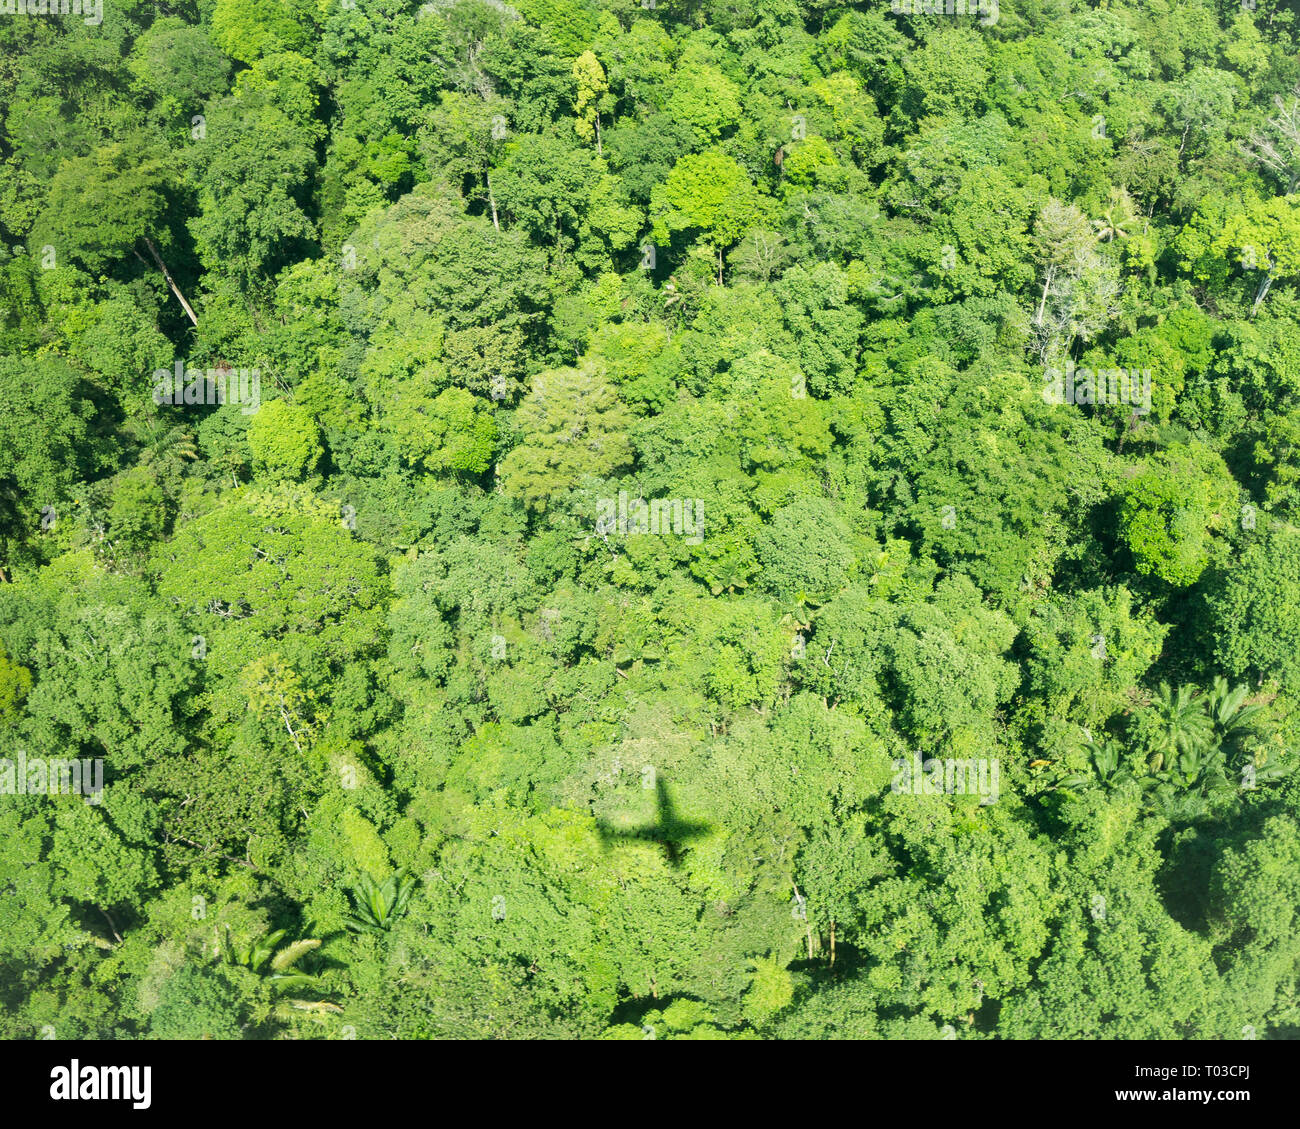 Costa Rica Rainforest jungle airplane, péninsule d'Osa, près de la baie Drake. Photo Stock